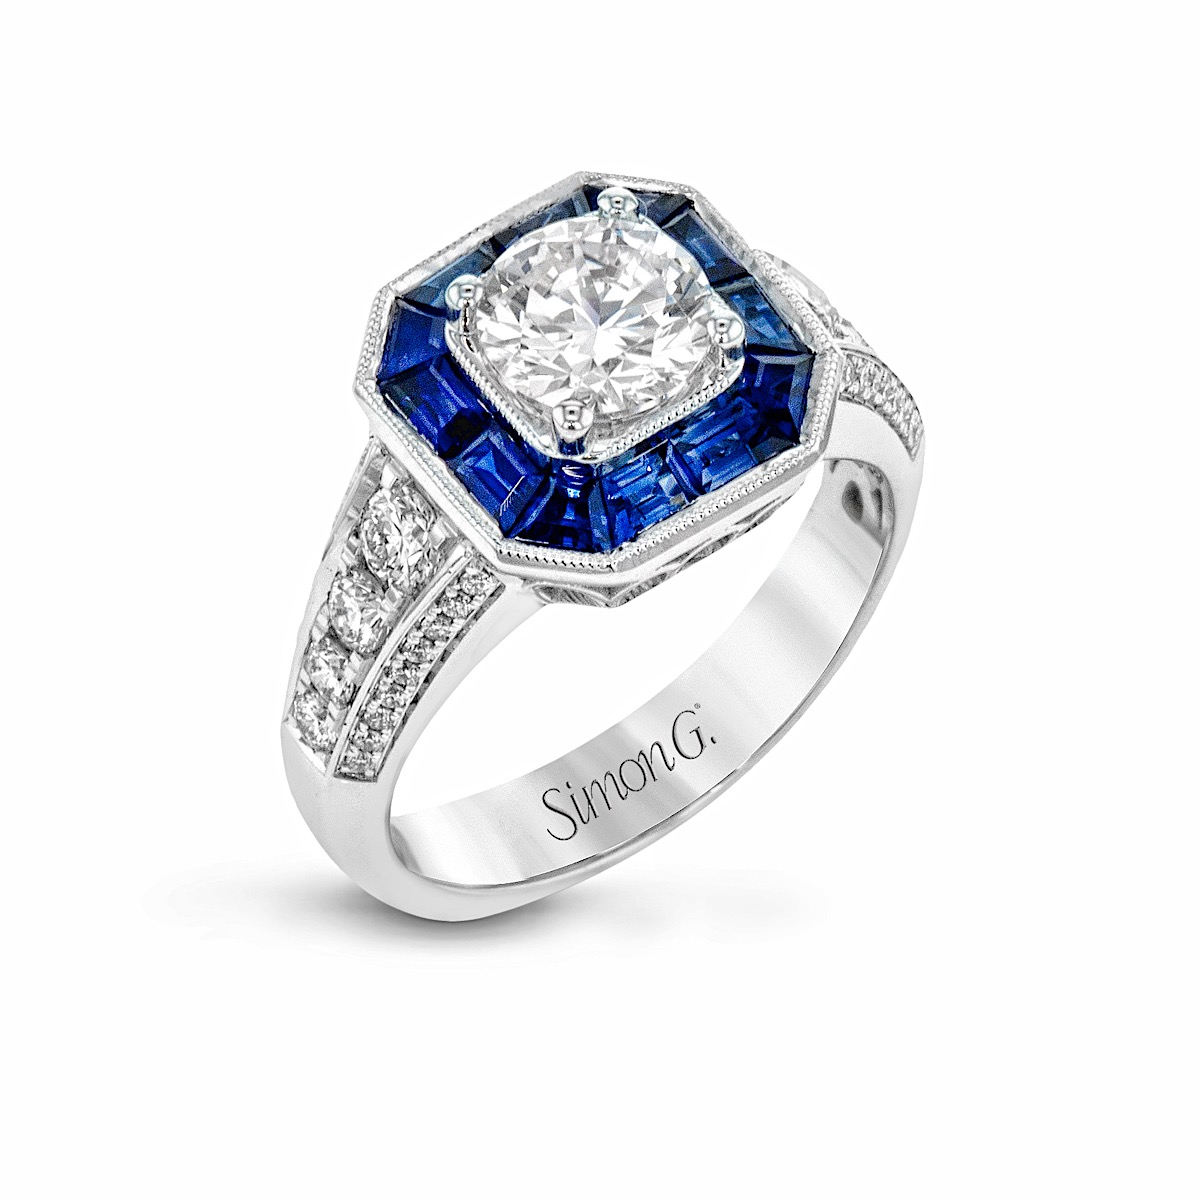 Round Diamond Engagement Ring With Blue Sapphire Octagon Halo